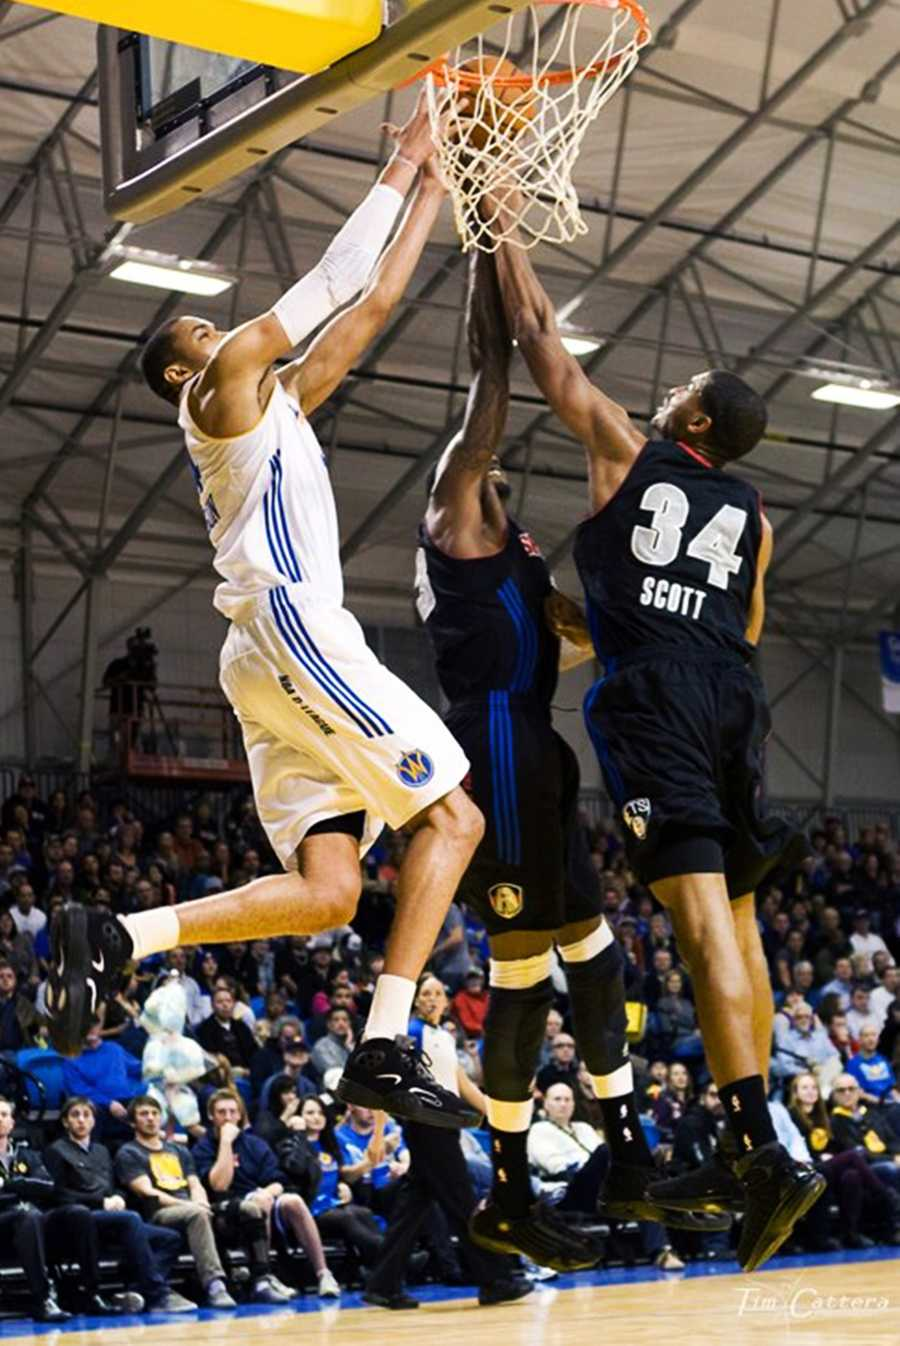 Dec. 27, 2012 Game: Since their season began on Nov. 17, the Santa Cruz Warriors won 10 games and lost two. They are undefeated on their home court so far.